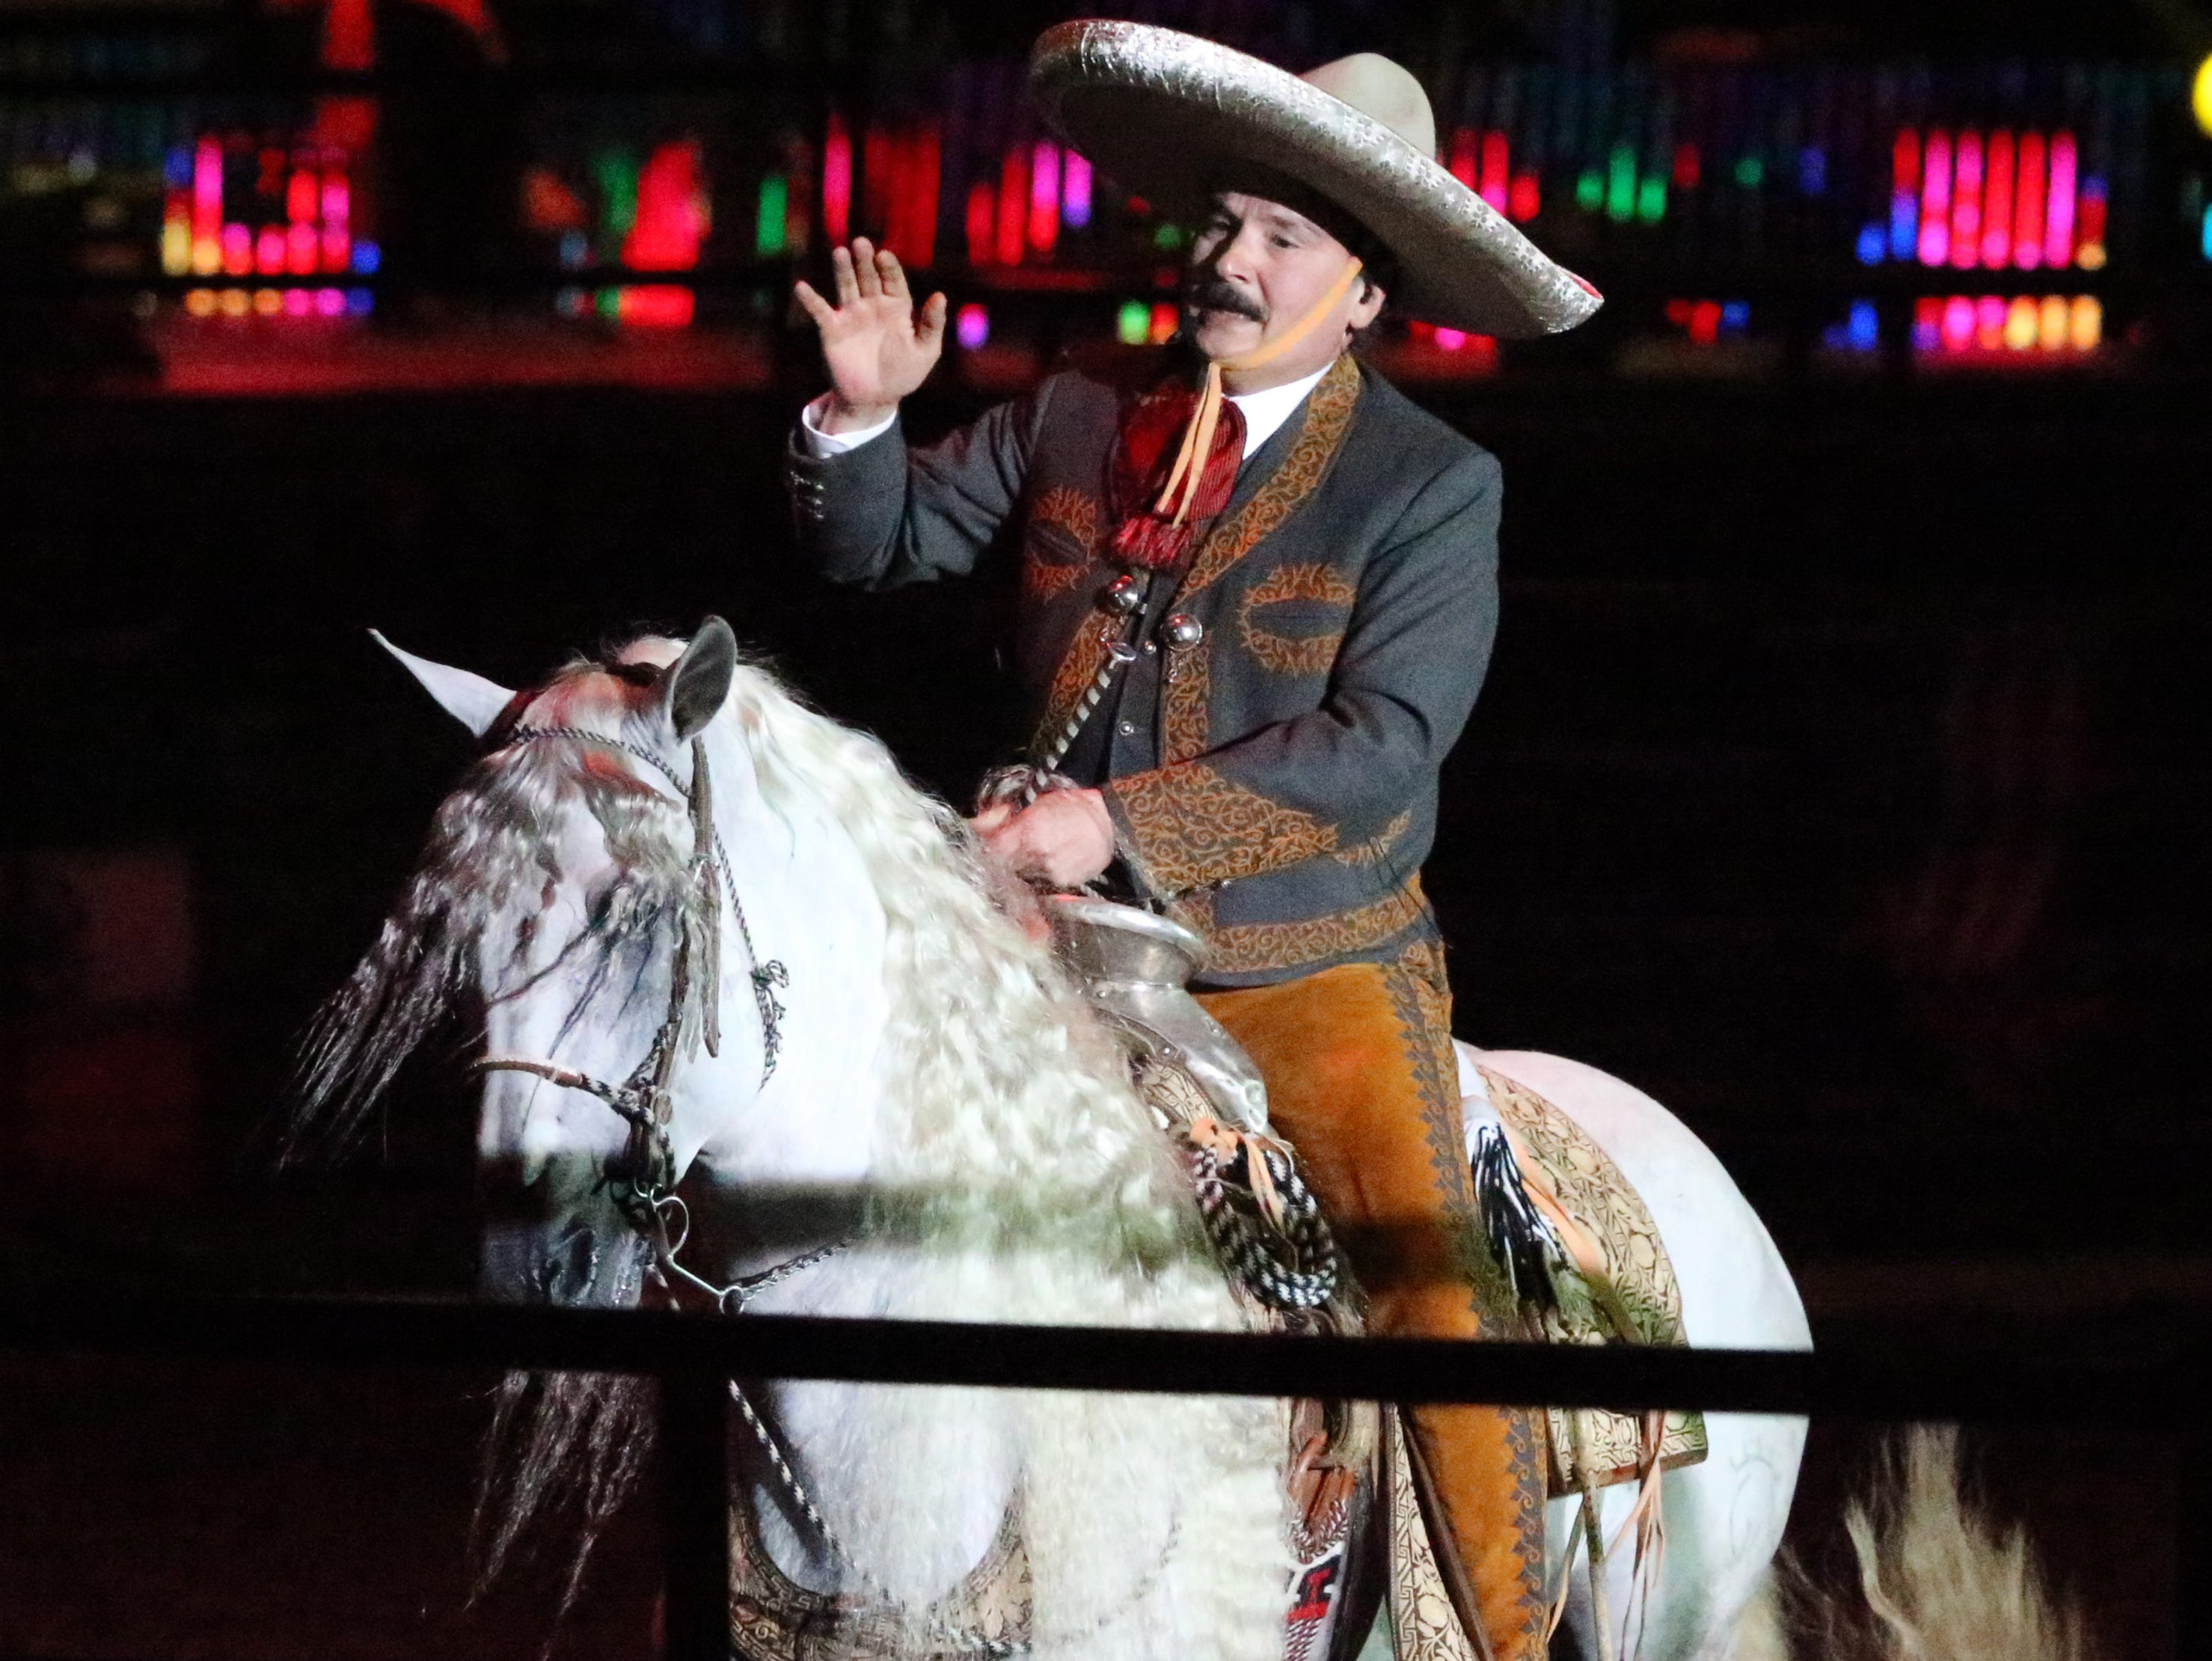 Antonio Aguilar, brother of Mexican singer Pepe Aguilar sings and chats with the audience Saturday night in the El Paso County Coliseum.